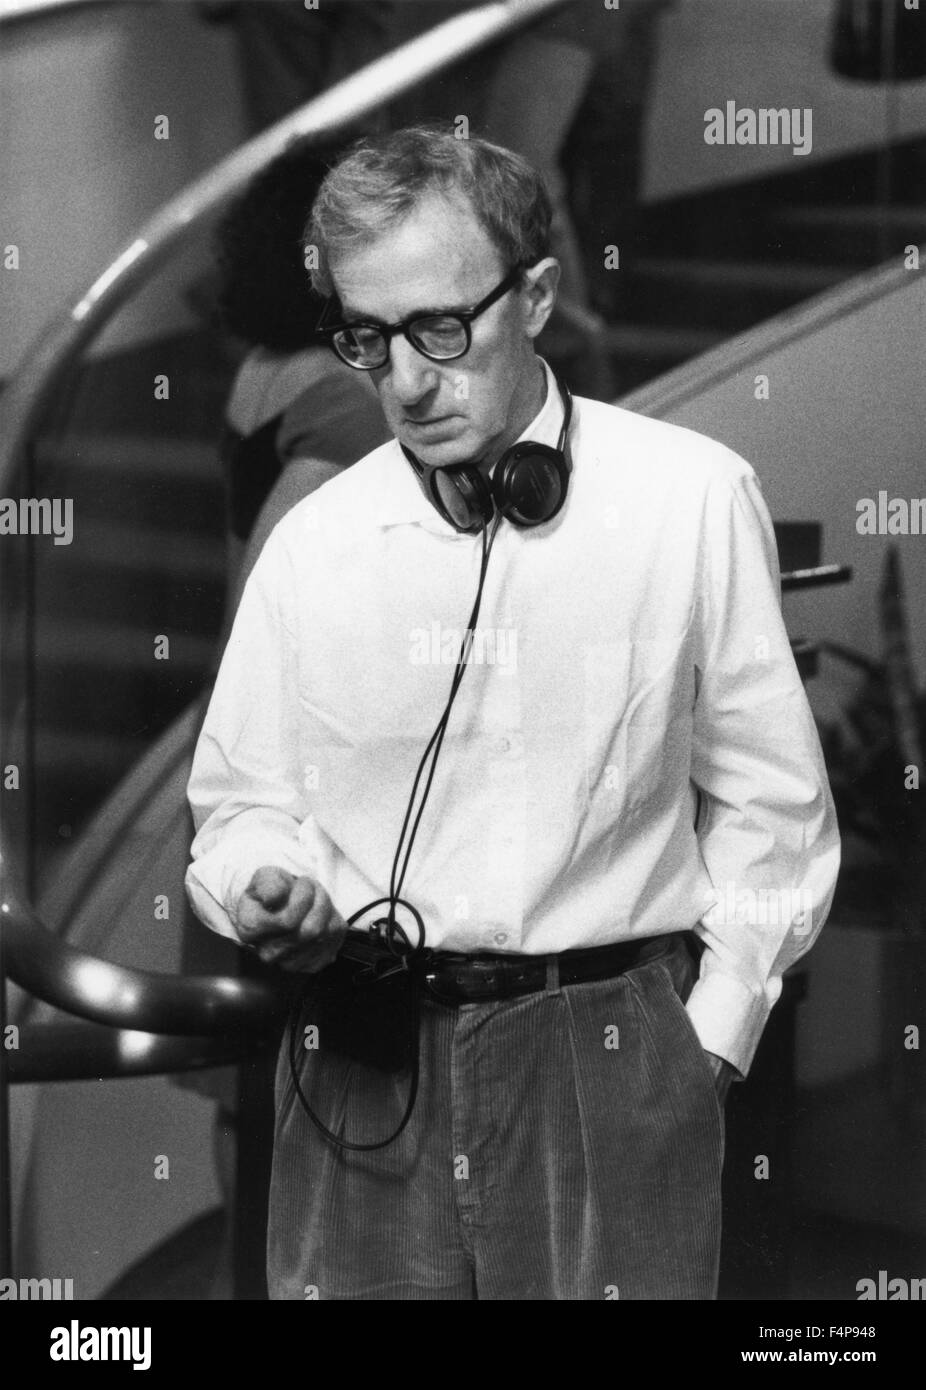 Woody Allen / Celebrity 1998 réalisé par Woody Allen Photo Stock